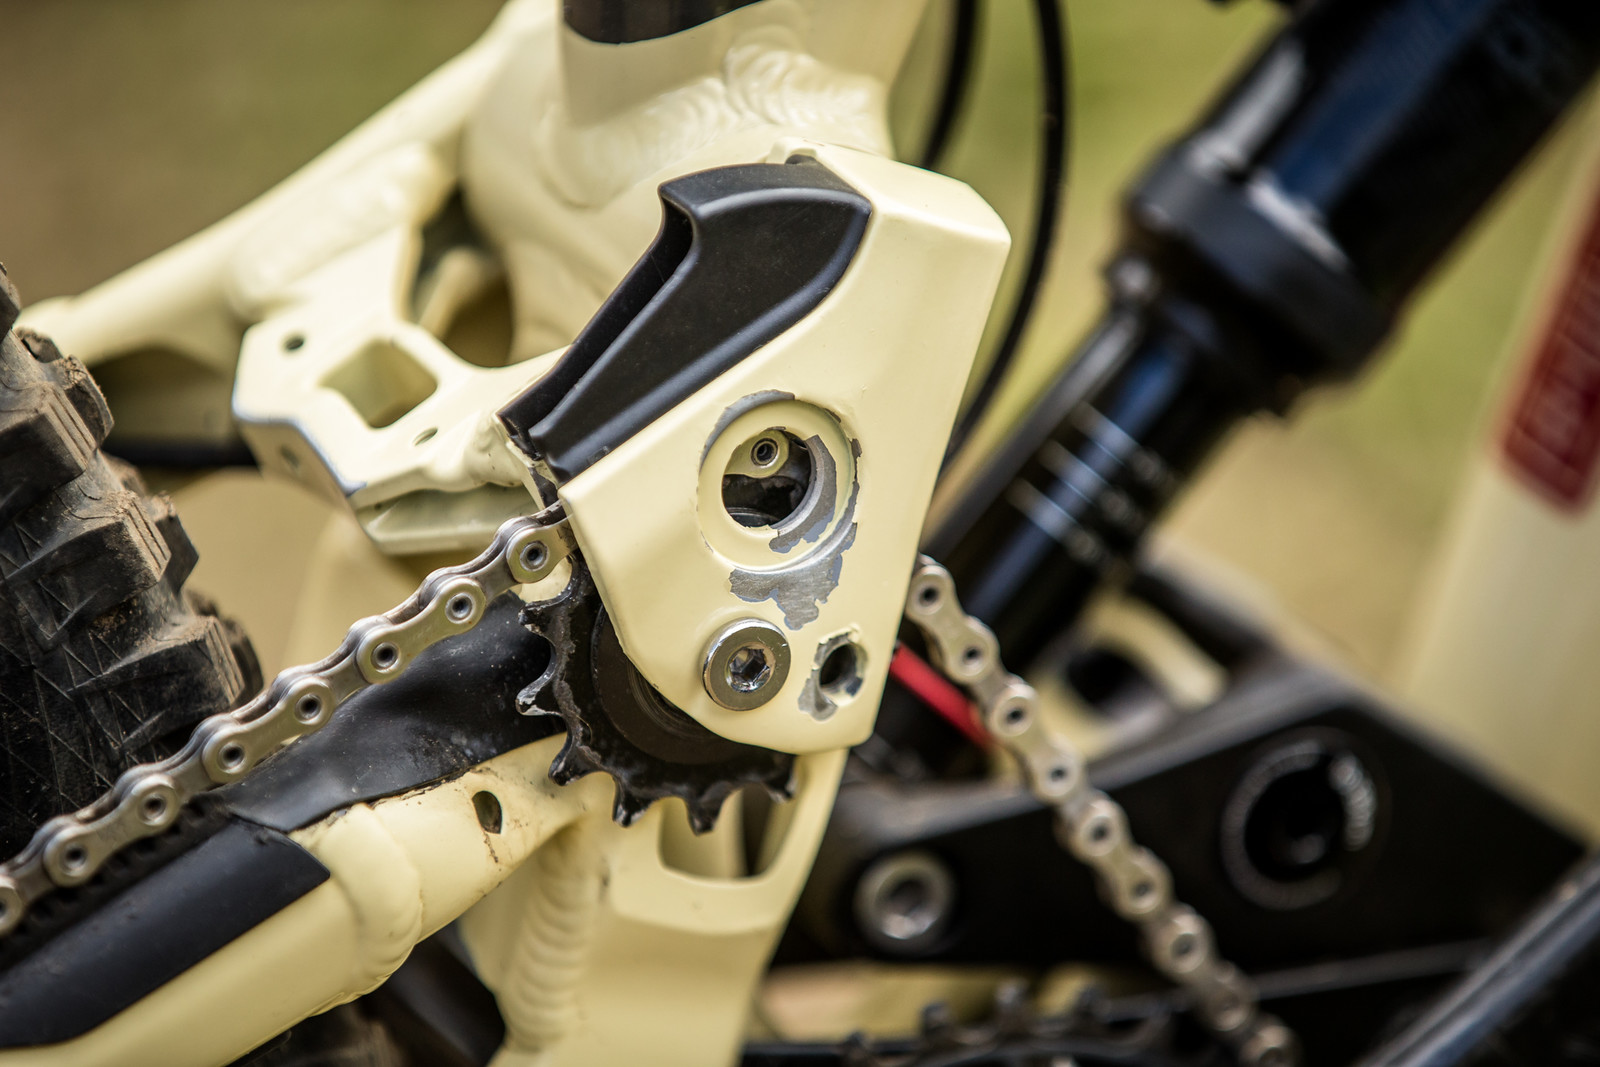 The Prototype Pulley Area - WINNING BIKE - Amaury Pierron's Commencal Supreme DH 29 - Mountain Biking Pictures - Vital MTB